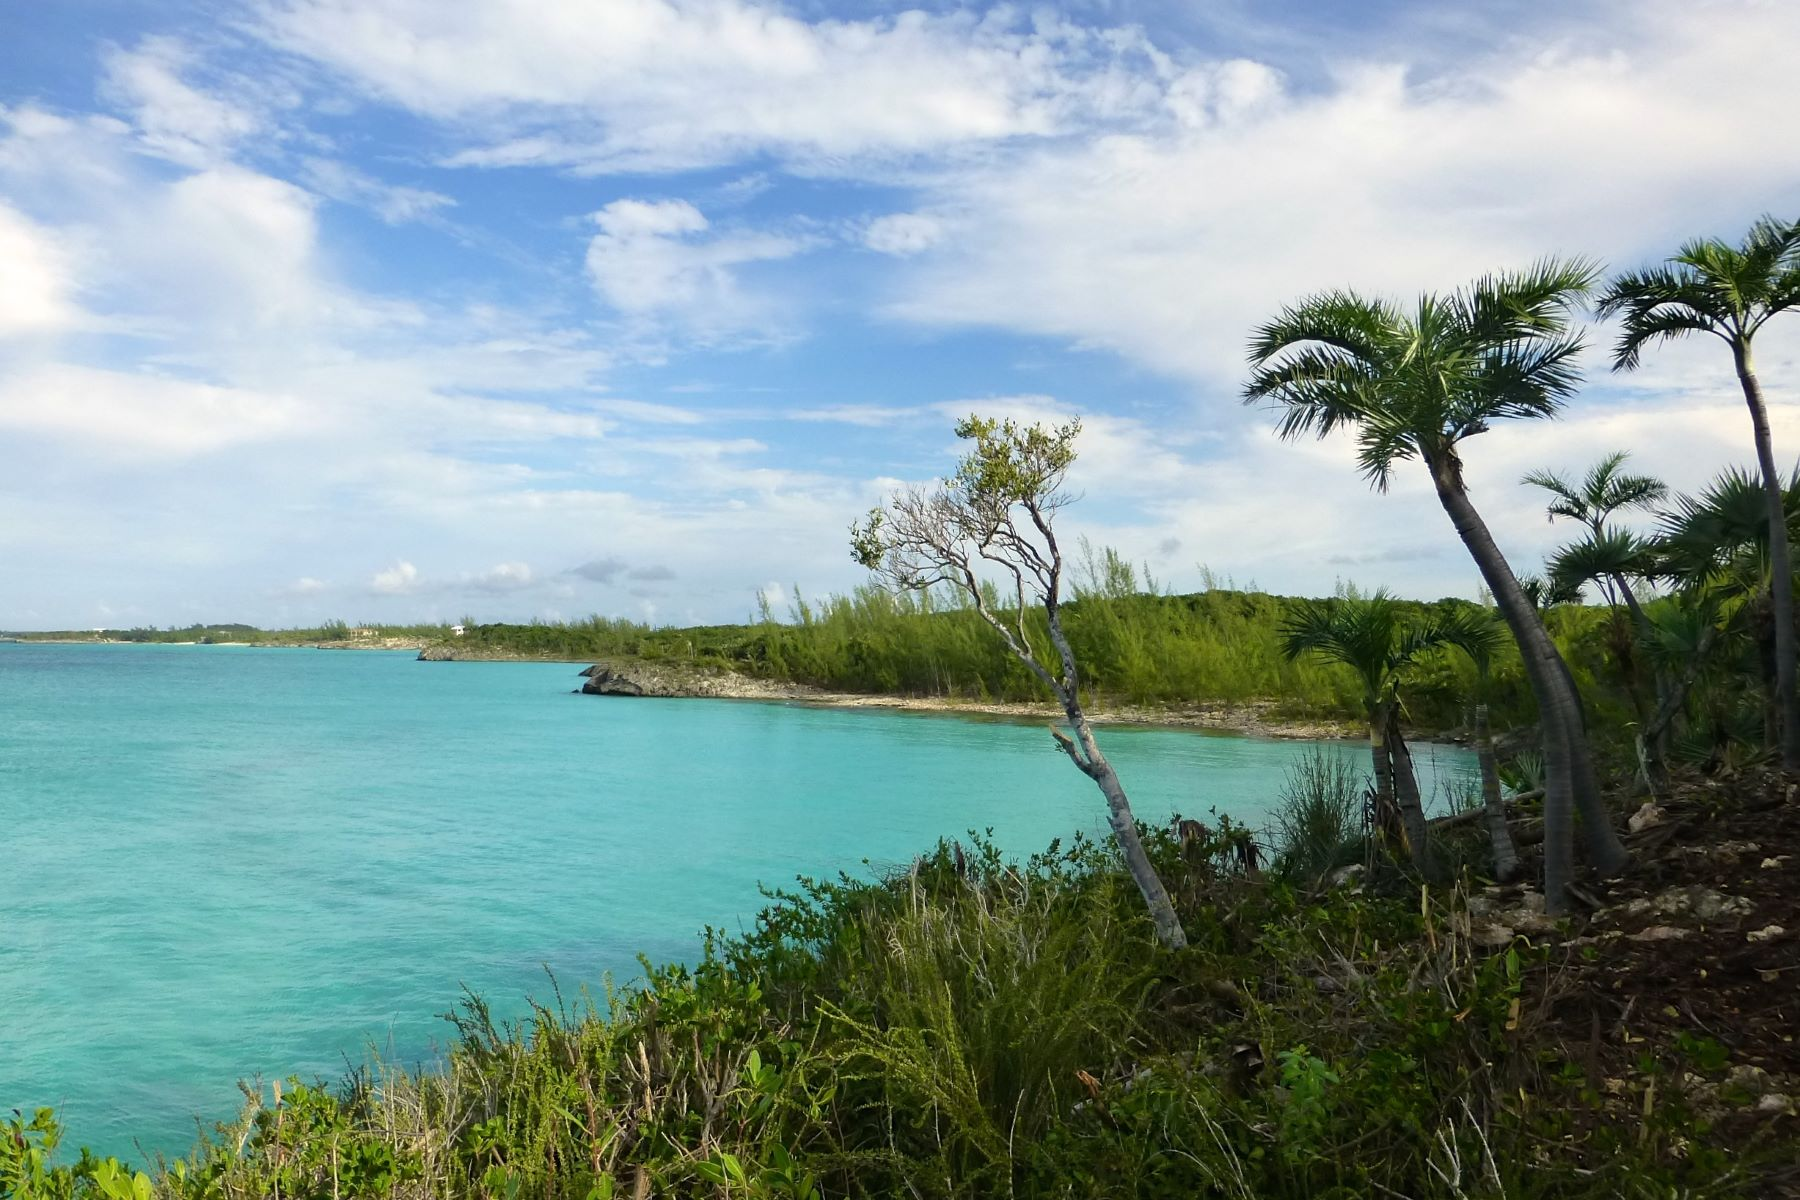 Terreno por un Venta en Secluded Seaside Acreage Gregory Town, Eleuthera Bahamas